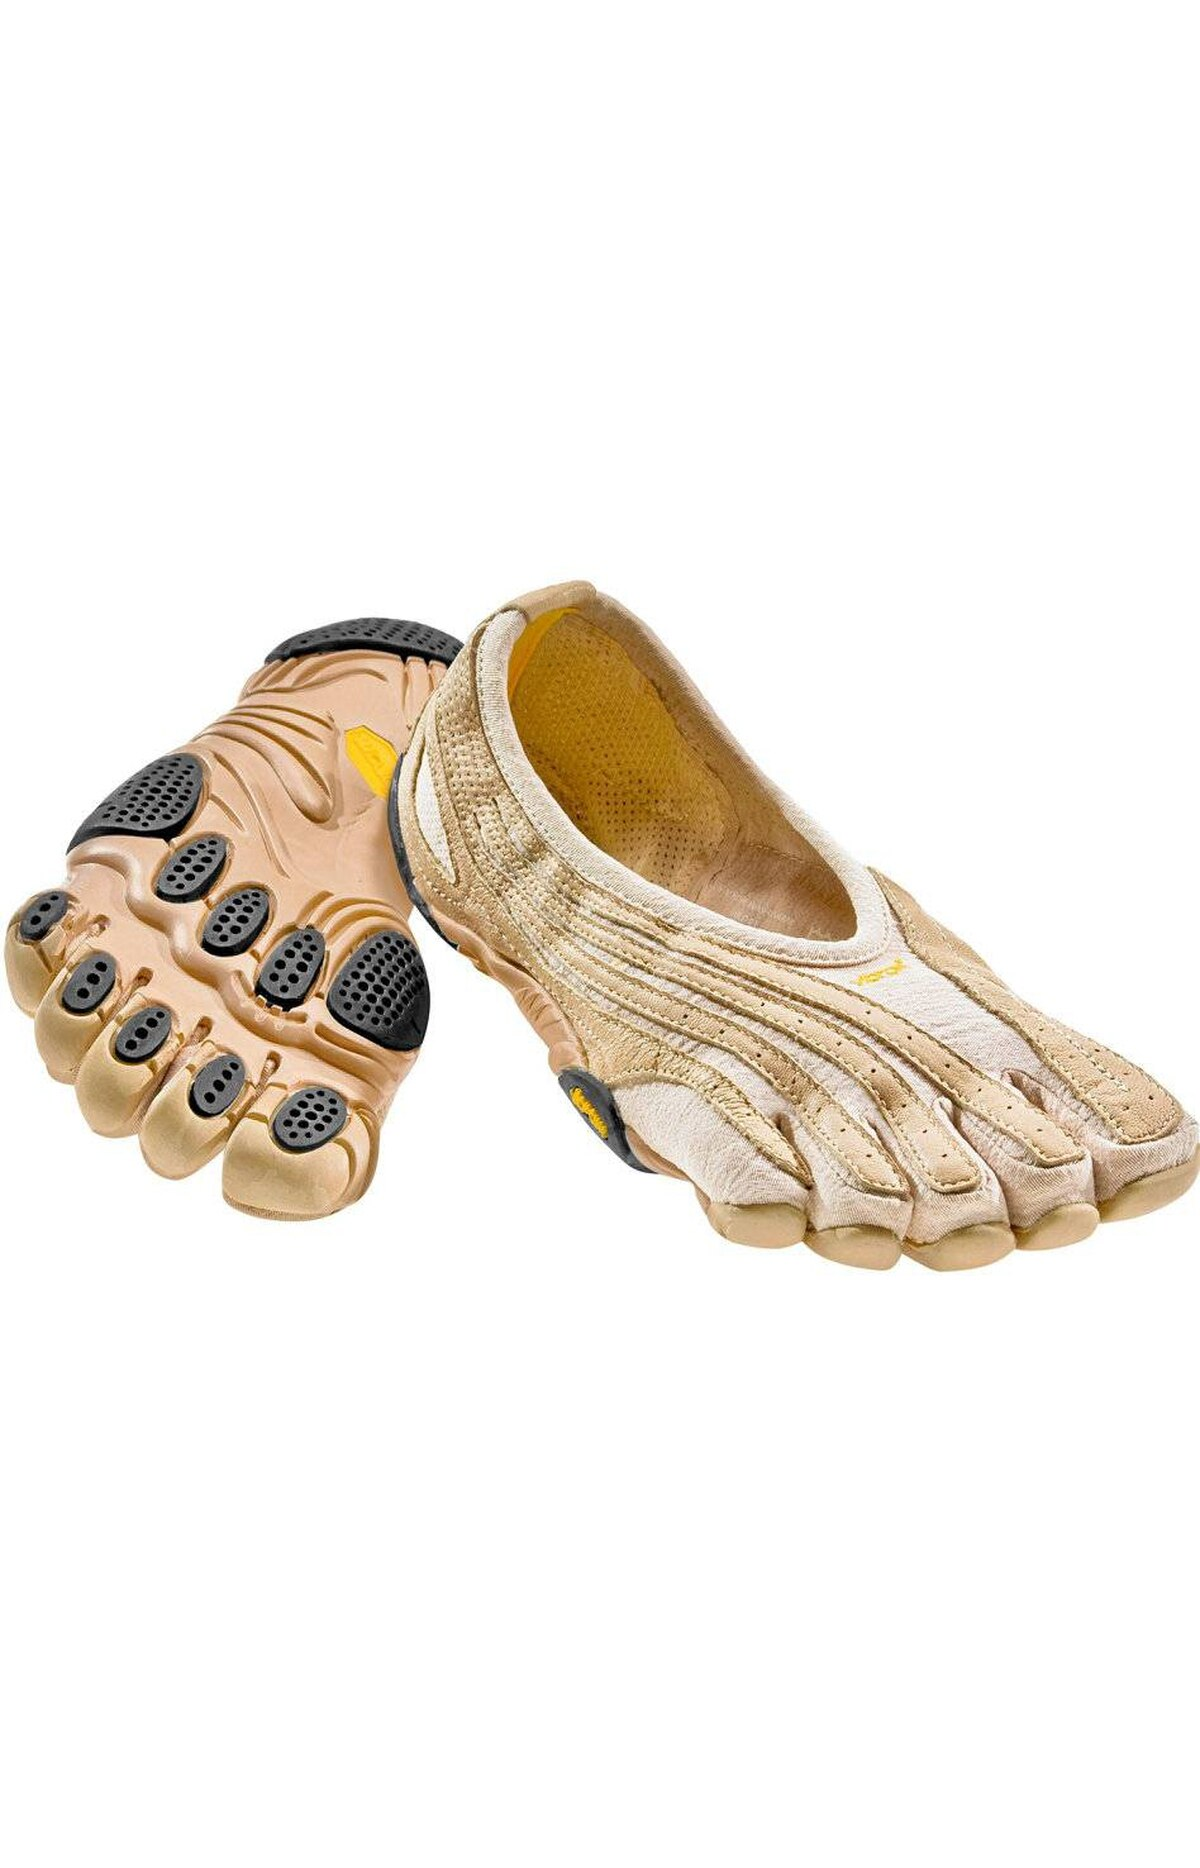 Run, baby, run Run, hike and bike in Vibram FiveFingers Jaya LR. These barefoot cross-trainers are designed to slip on like a foot glove, improving agility and range of motion by padding each toe individually. You'll be surprised how its lightweight soles and strategically placed rubber pads absorb the shock of intense workouts, like jogging on concrete. $100; mec.ca